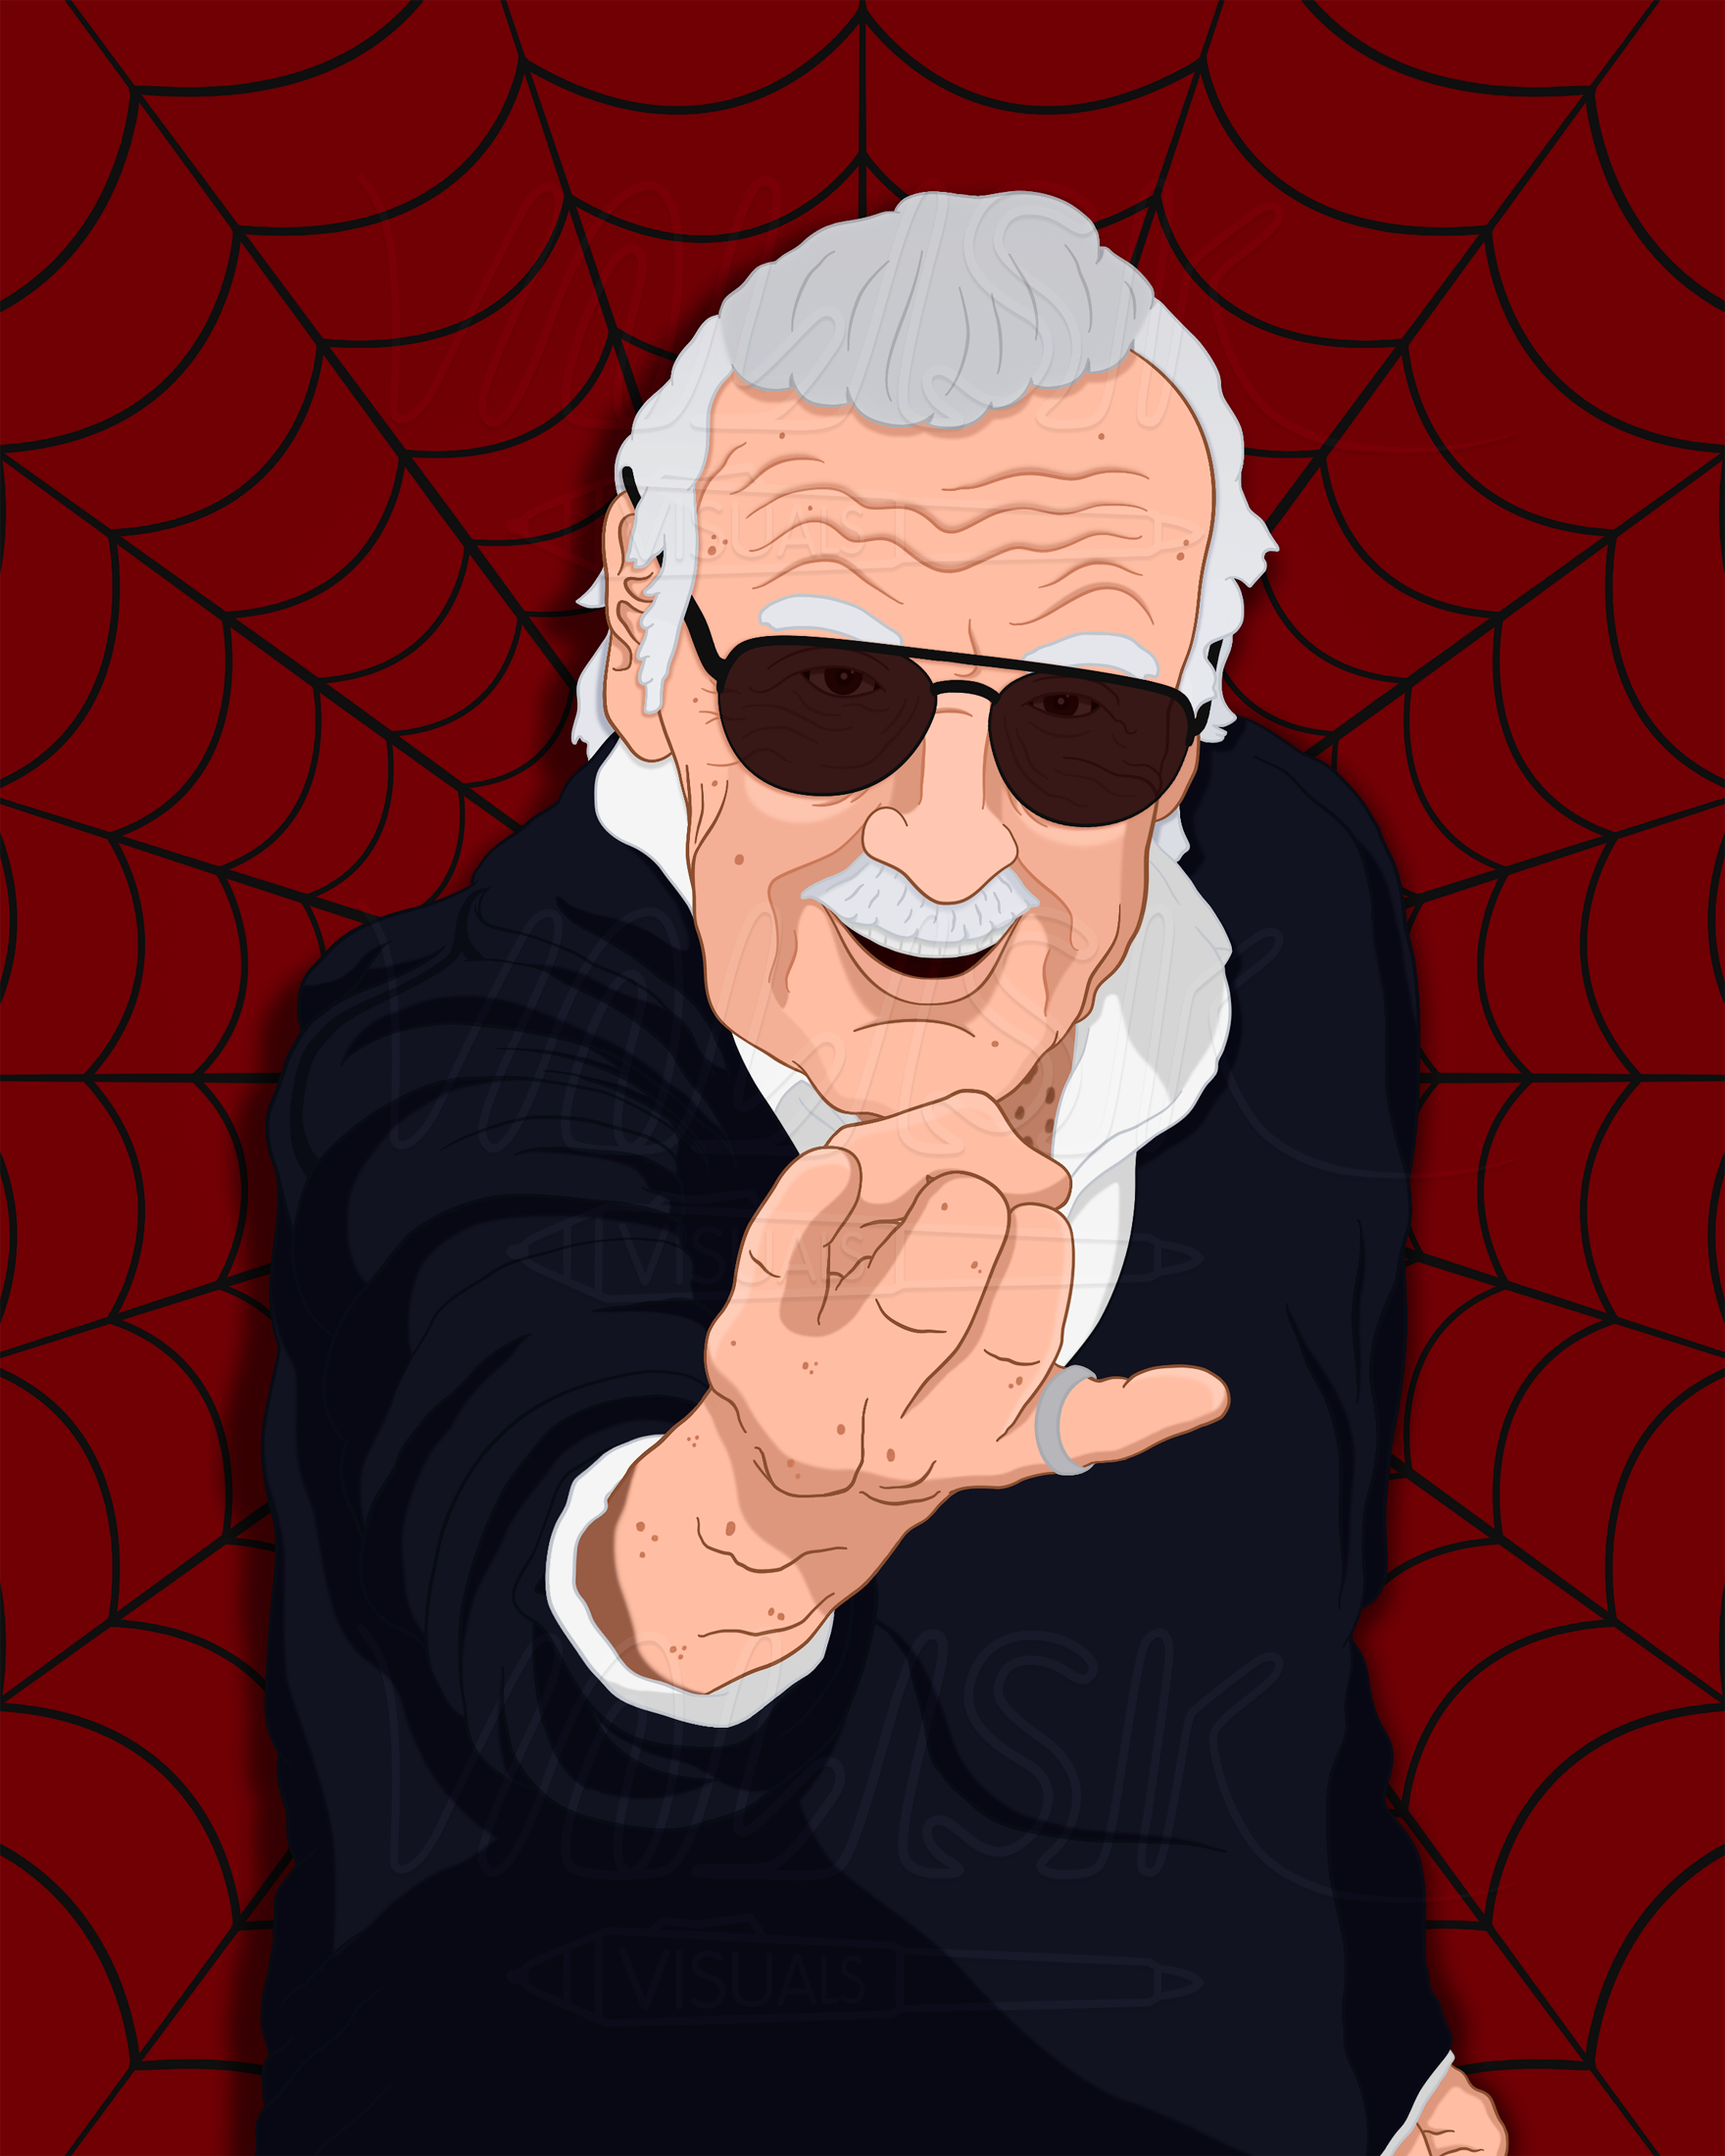 In honor of Stan Lee, I made this [FANART] : marvelstudios.